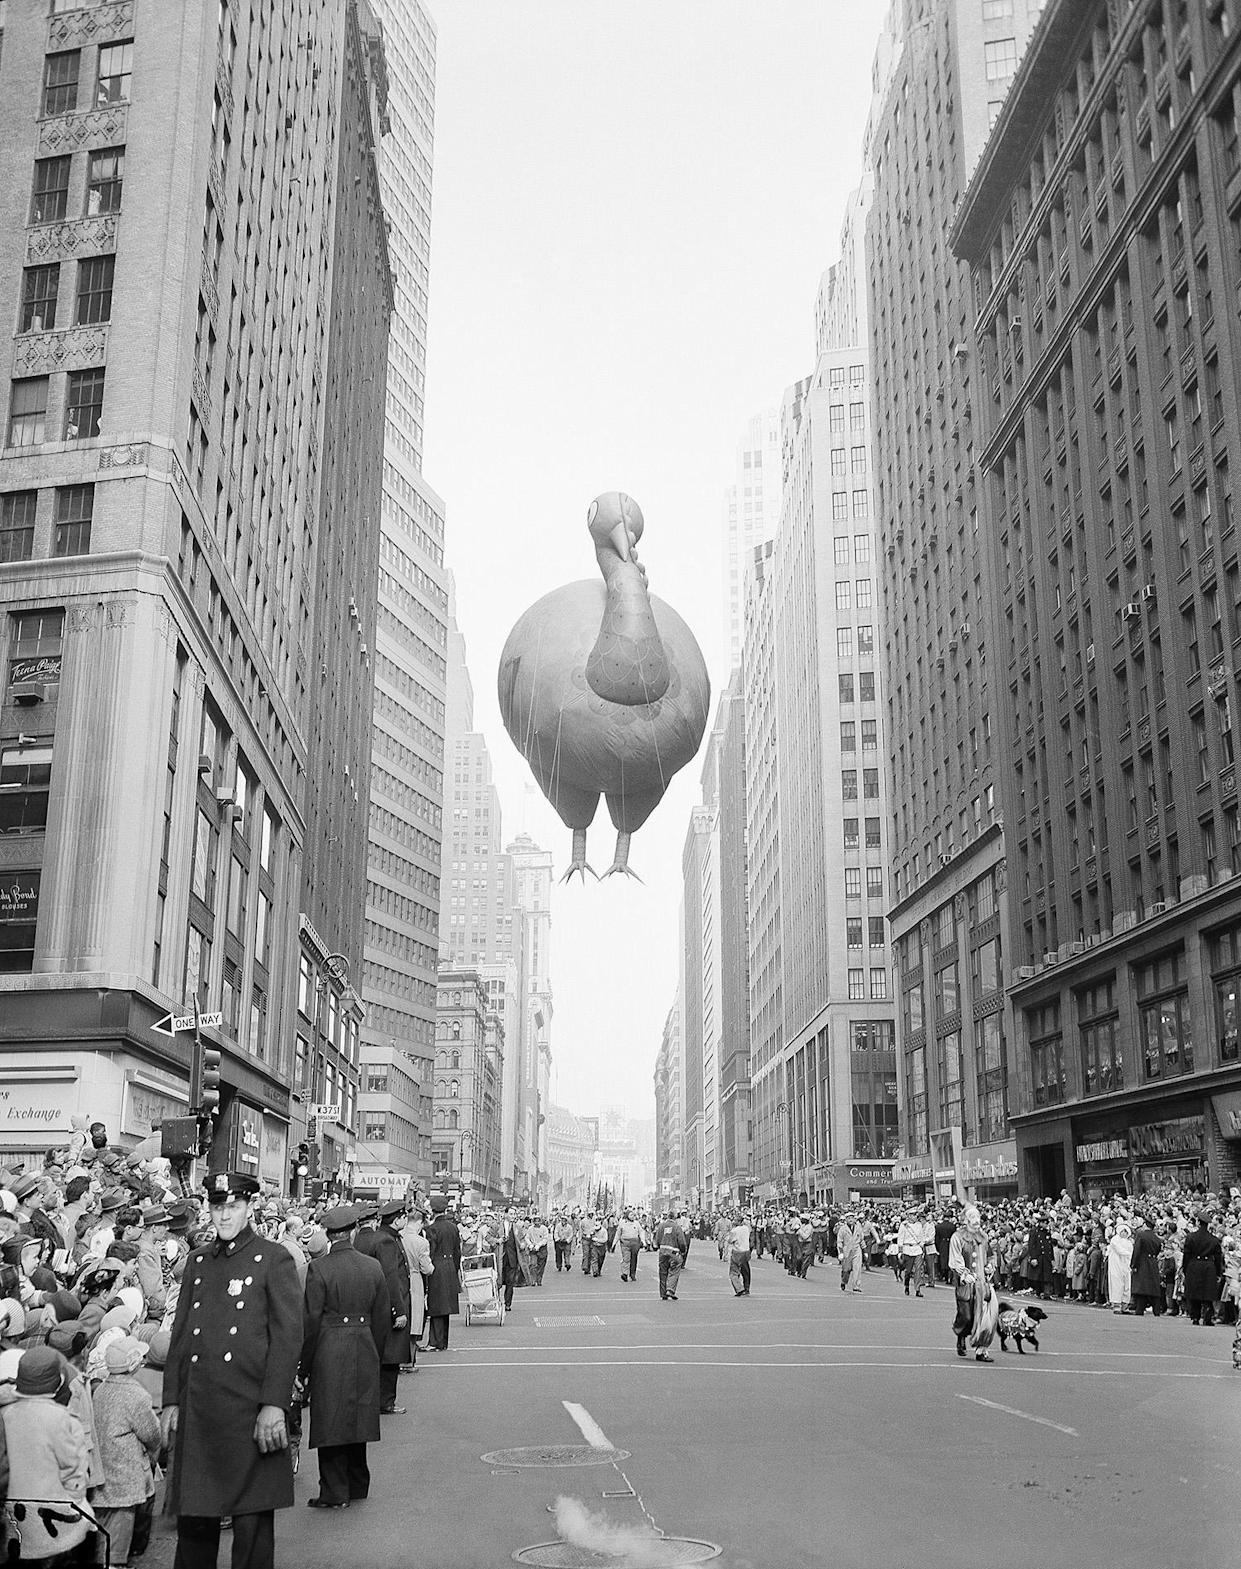 A giant turkey float squeezes between buildings as the 31st annual Macy's Thanksgiving Day Parade moves down Broadway near 37th Street in New York, Nov. 28, 1957. (Photo: John Lindsay/AP)